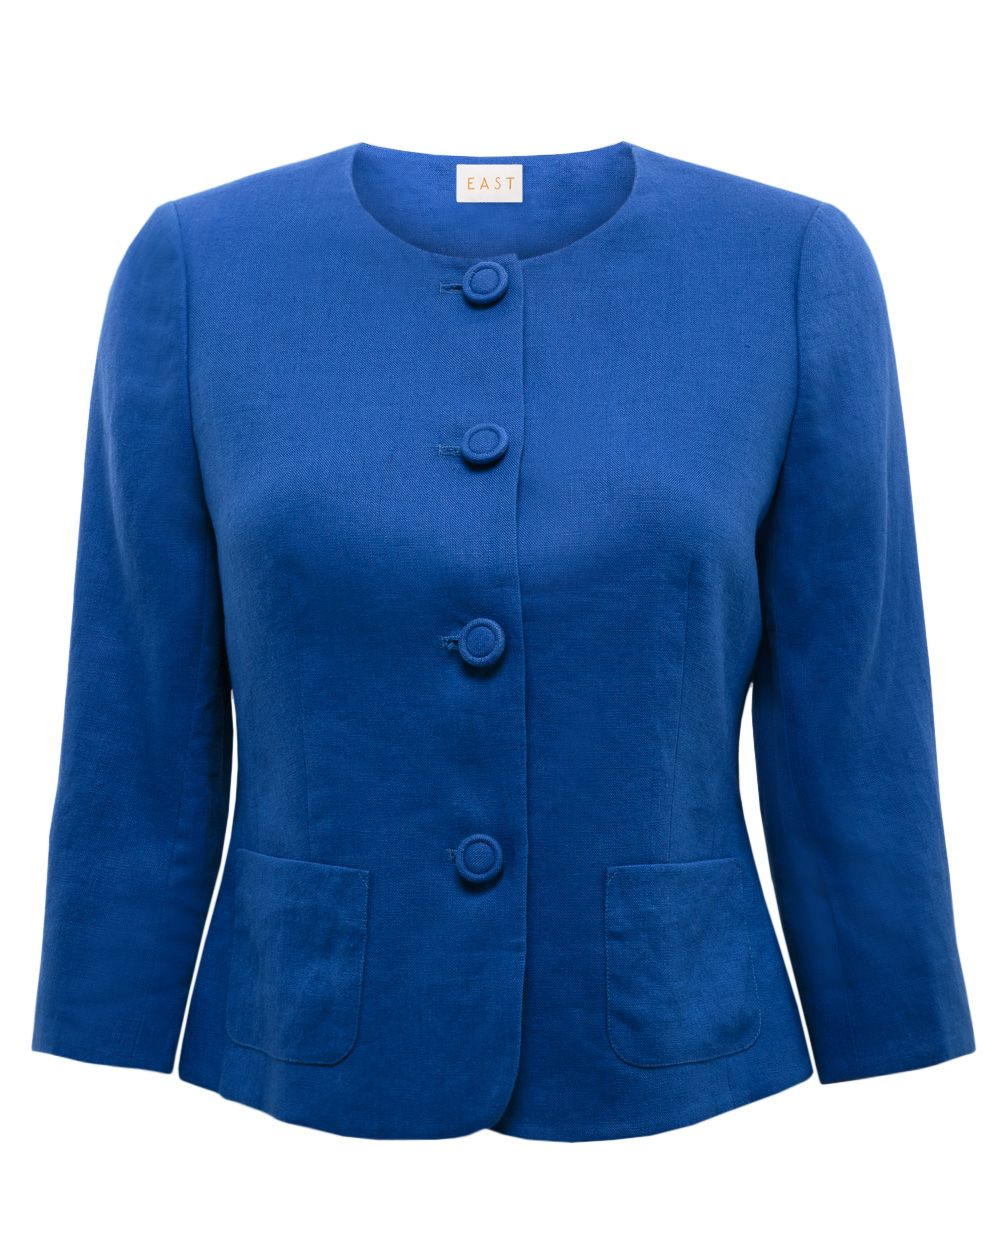 Victoire collarless jacket